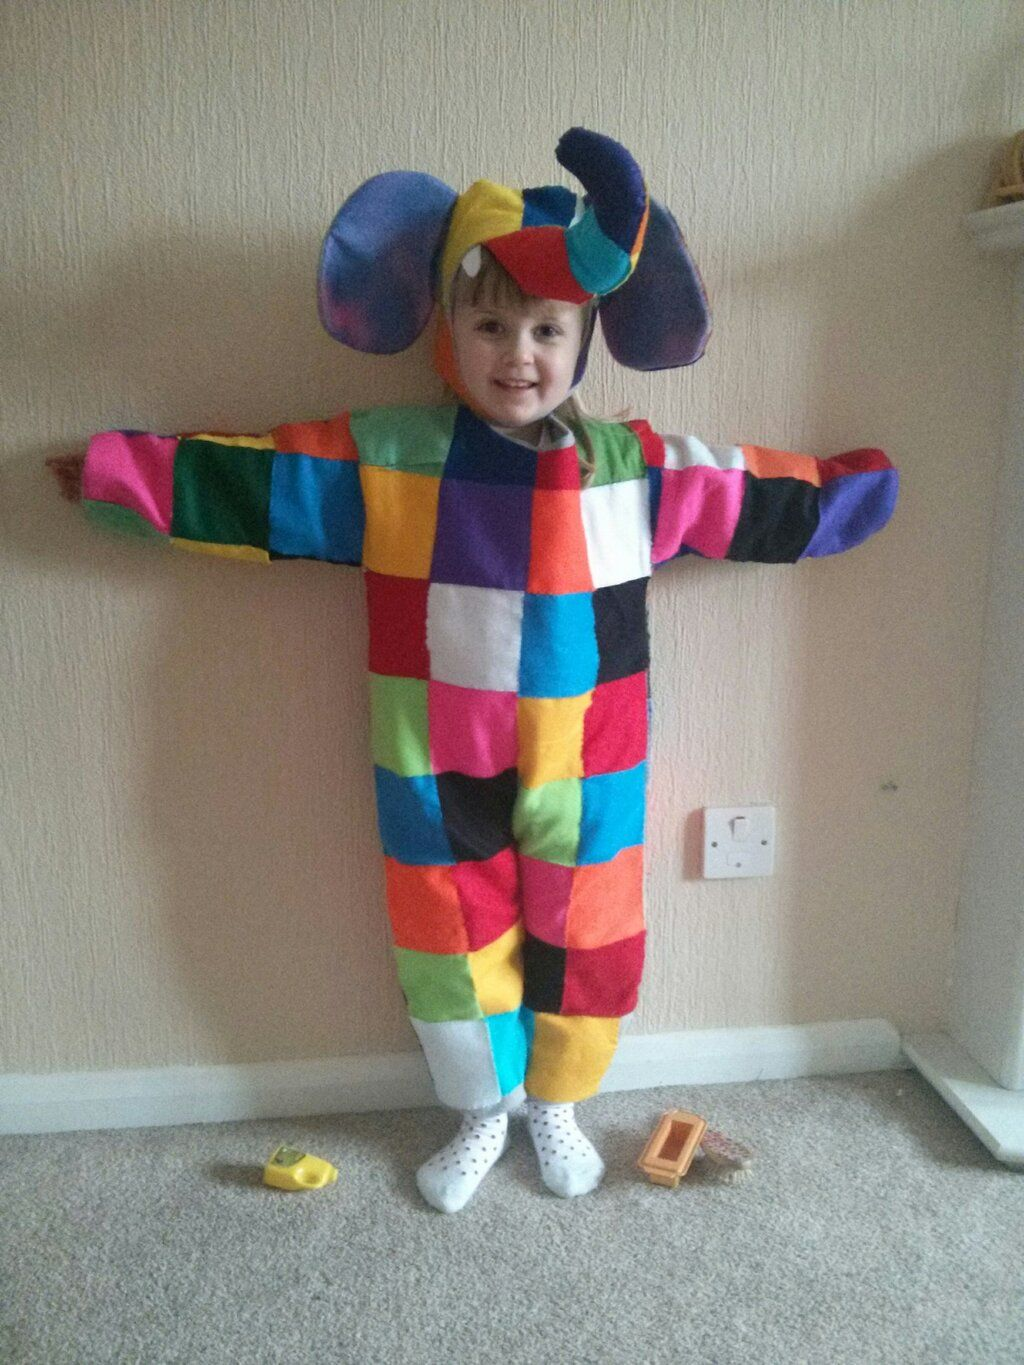 World Book Day Elmer the Patchwork Elephant costume inspiration via Beccy Hol #MyElmer.  sc 1 st  Pinterest & World Book Day Elmer the Patchwork Elephant costume inspiration via ...